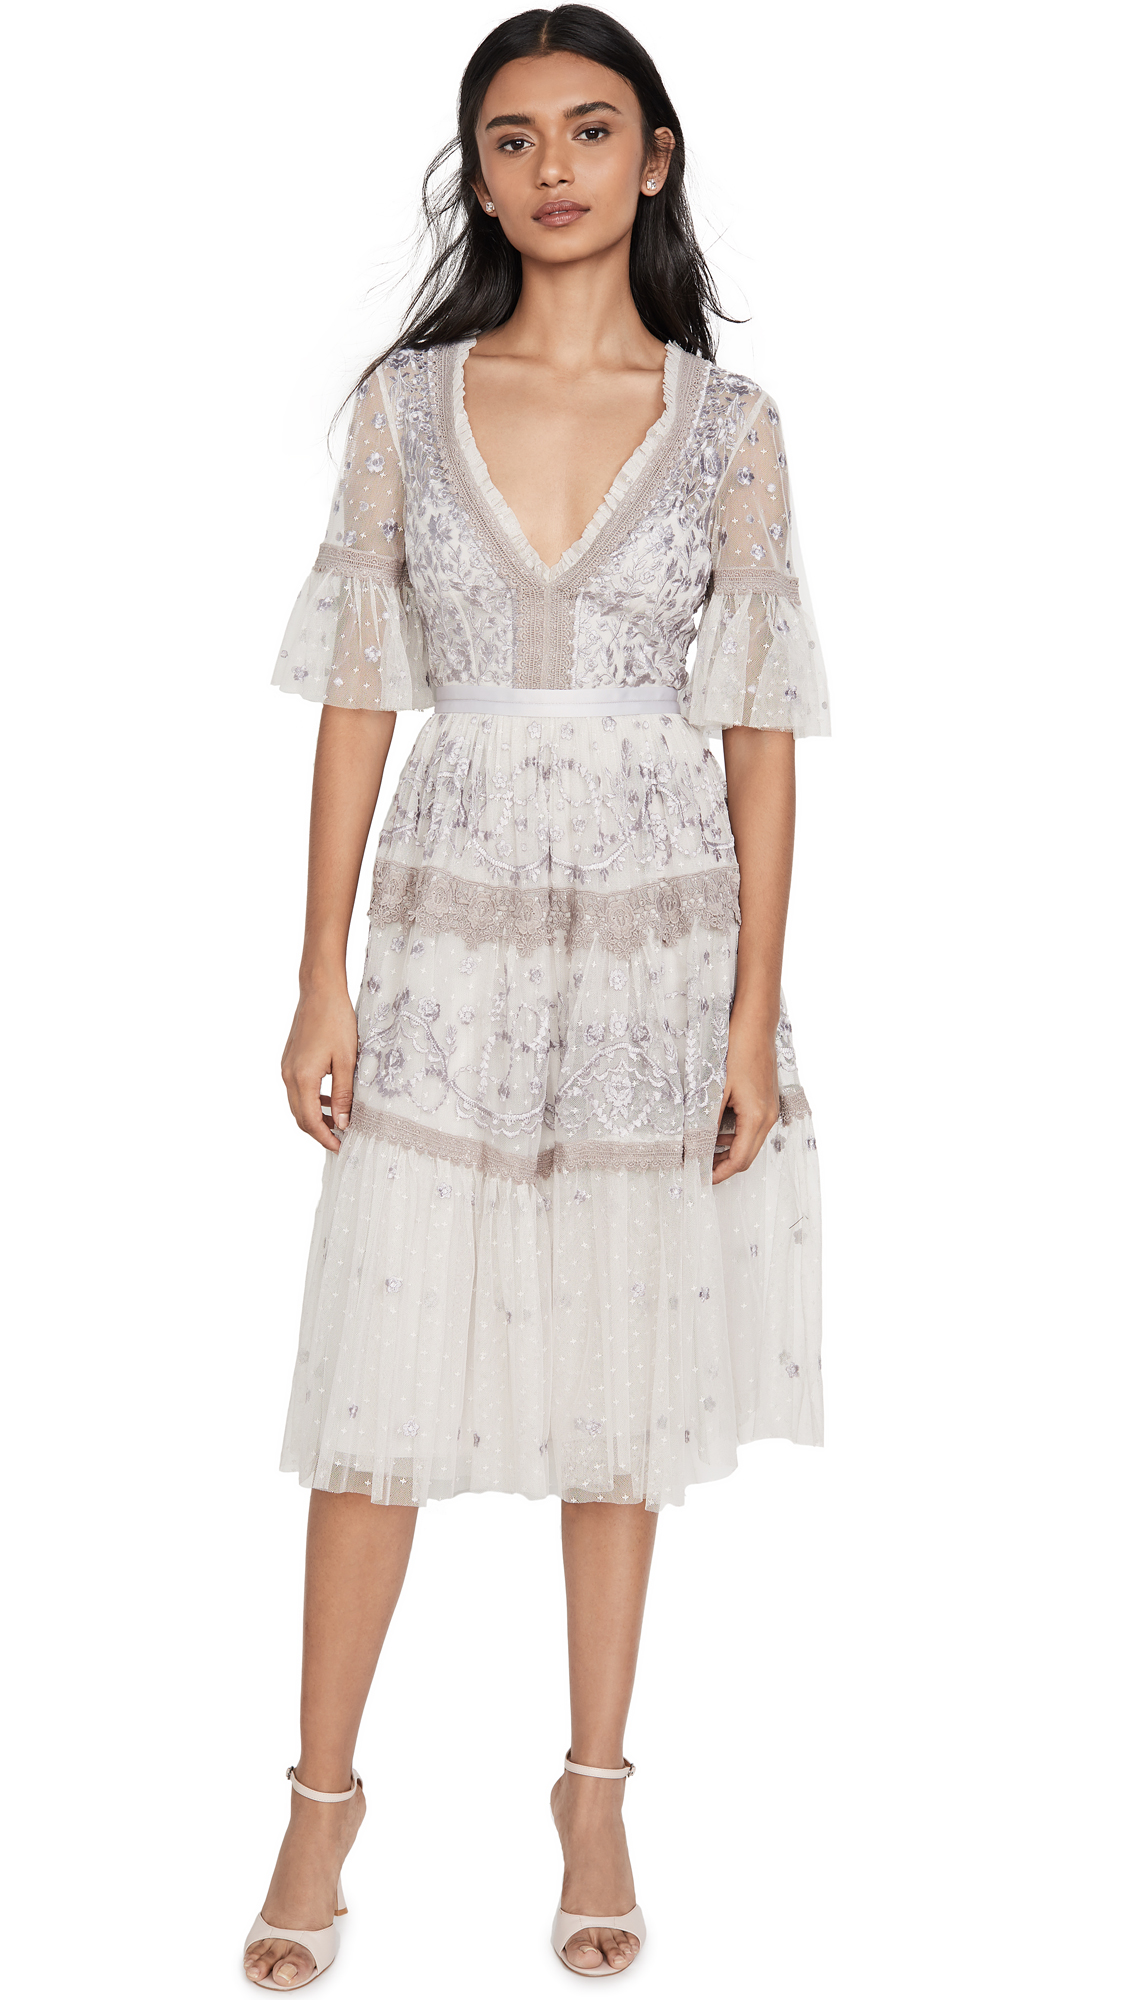 Needle & Thread Midsummer Lace Dress - 30% Off Sale